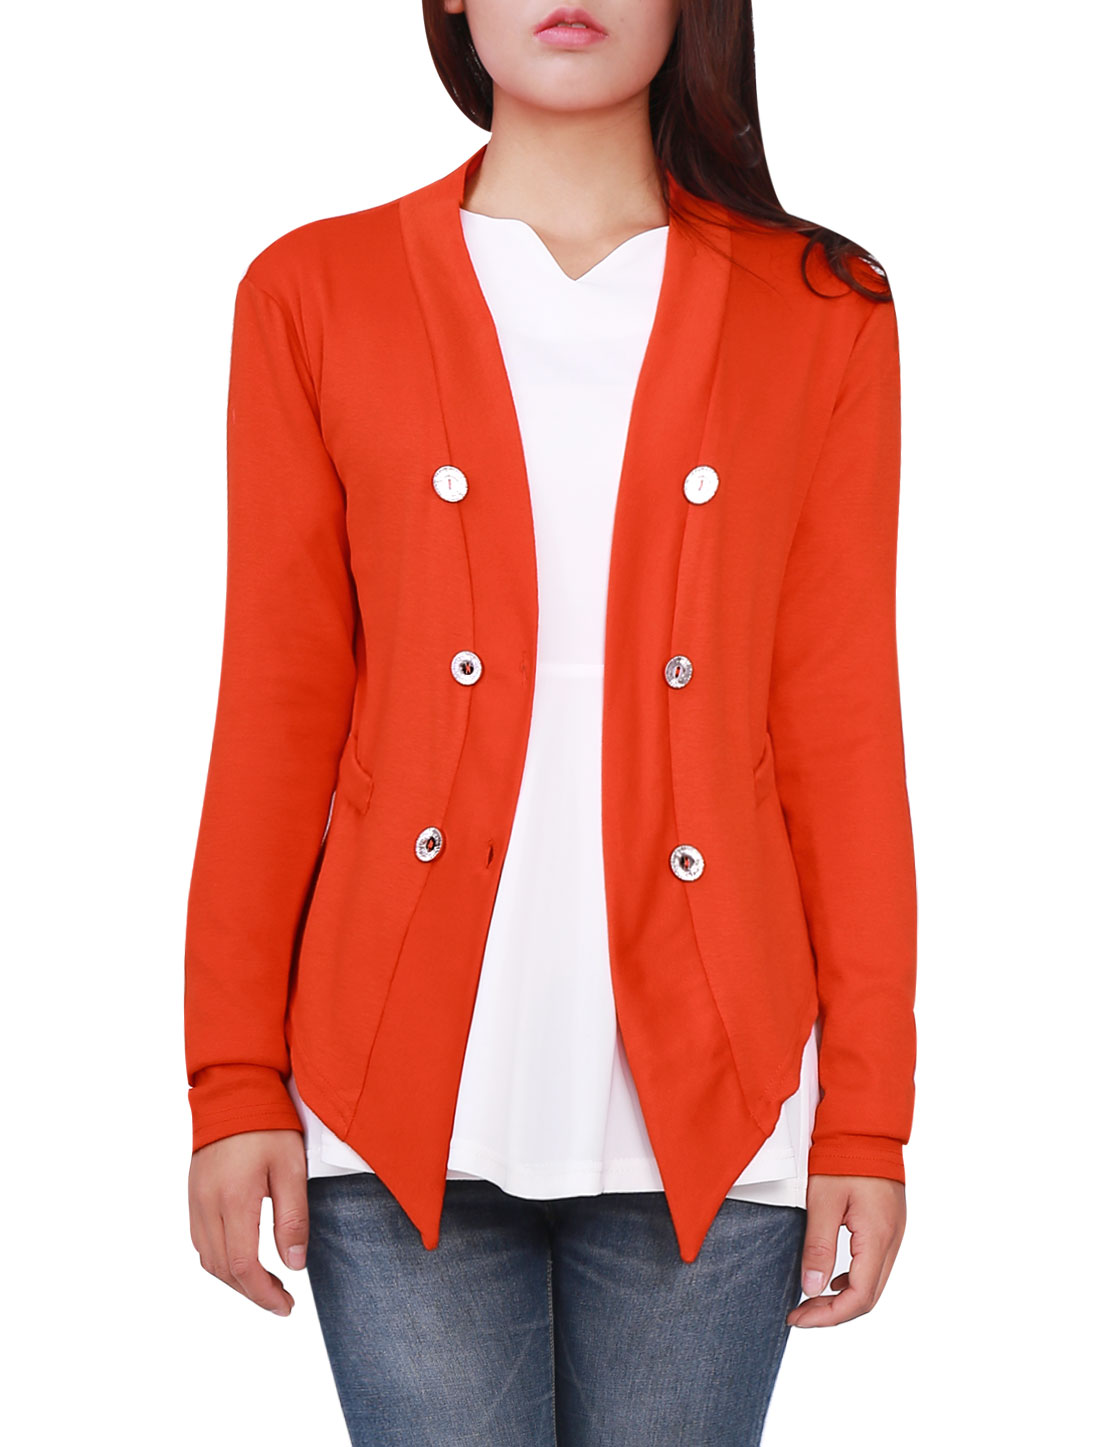 Women Dark Orange Deep V Neck Button Up Autumn Thin Cardigan XS